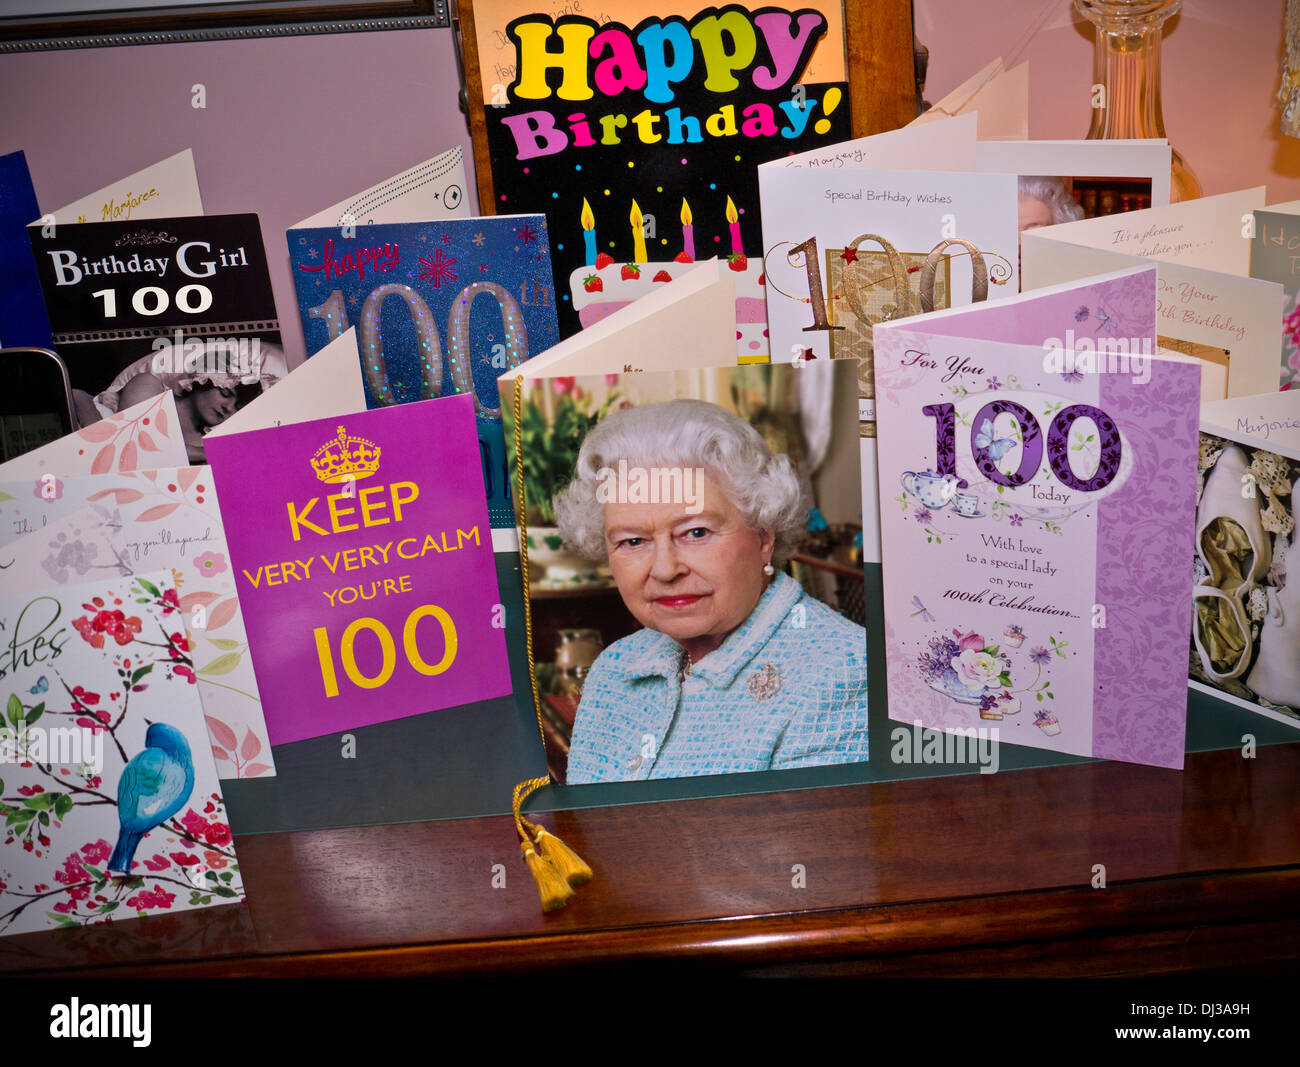 Selection of 100 years of age birthday cards on sideboard with the selection of 100 years of age birthday cards on sideboard with the traditional card from hrh queen elizabeth 11 in centre place bookmarktalkfo Images